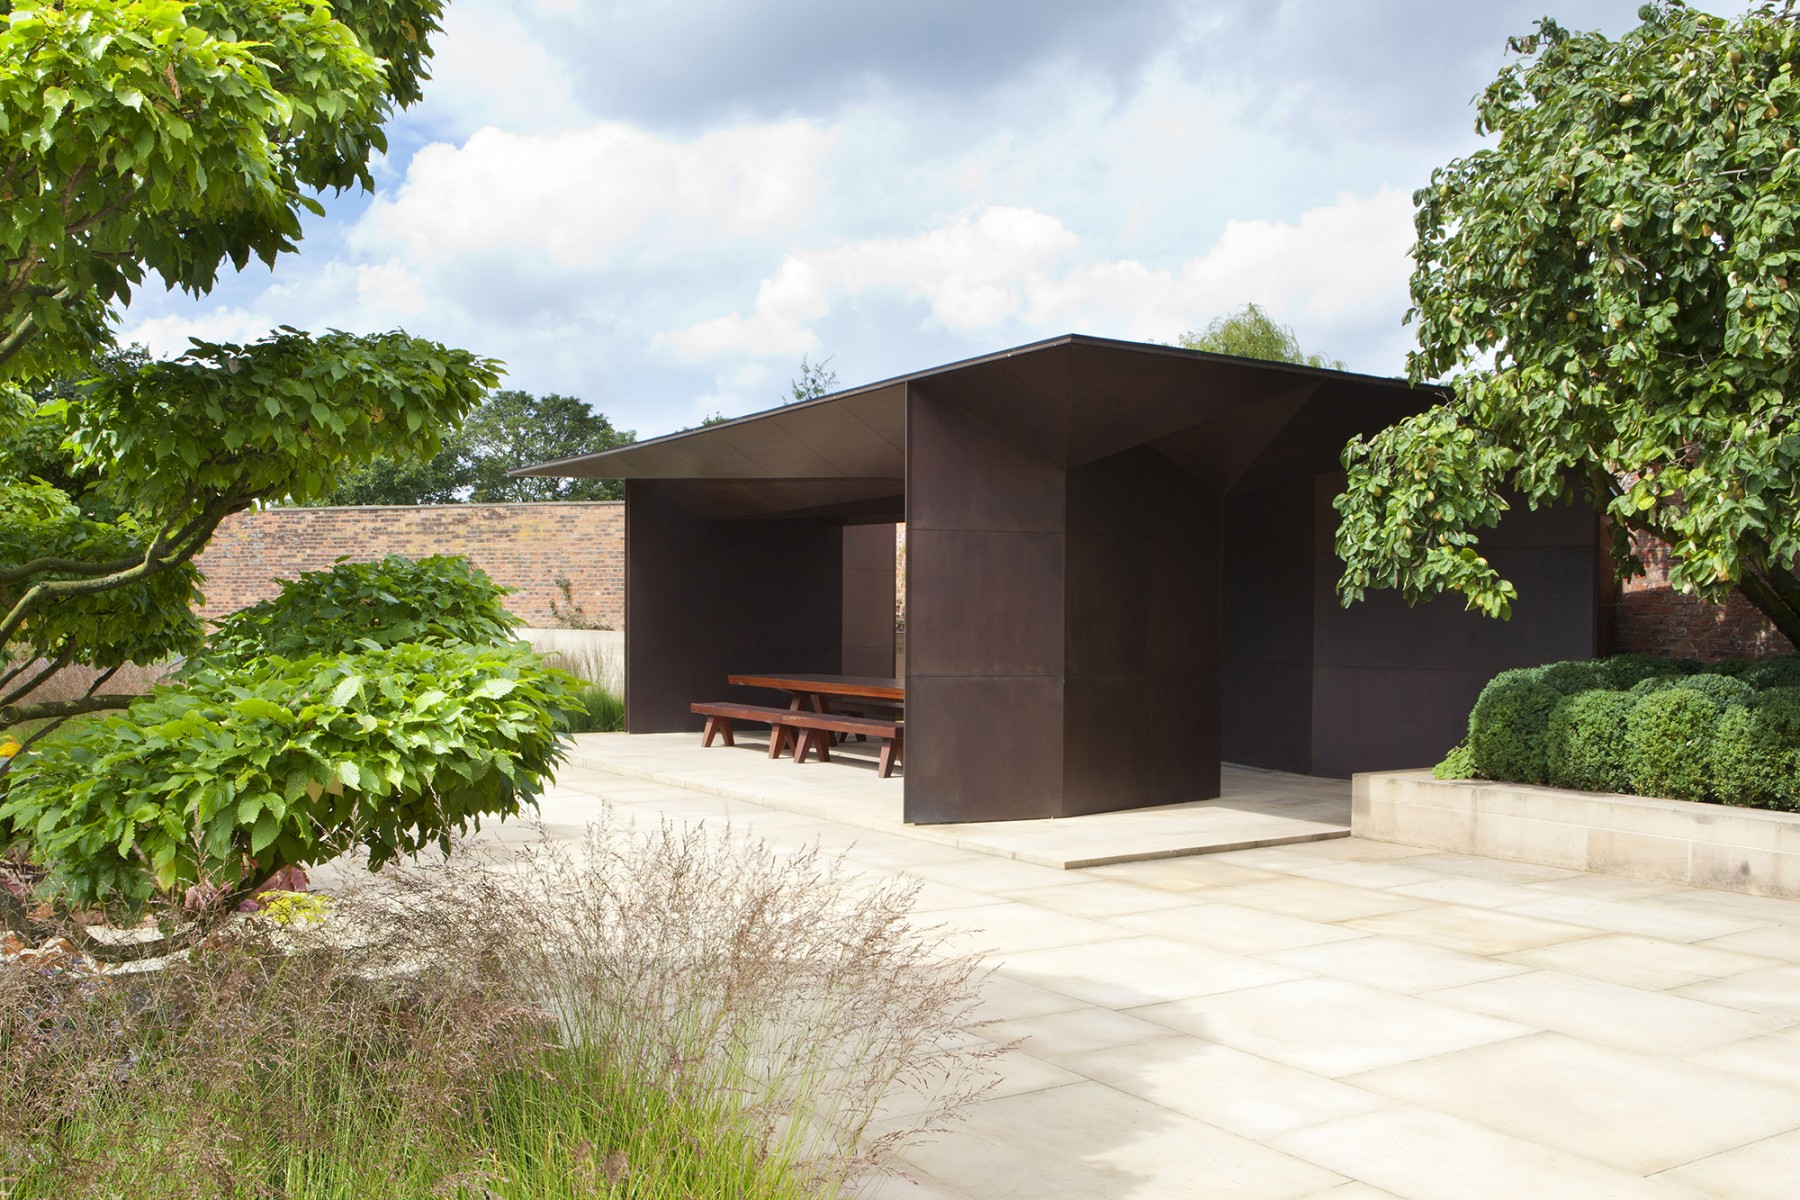 Garden-Grange-Pavilion-landscape-cheshire-cogshall-bronze-copper-room-gate-Tom-Stuart-smith-Jamie-Fobert-Architects-10